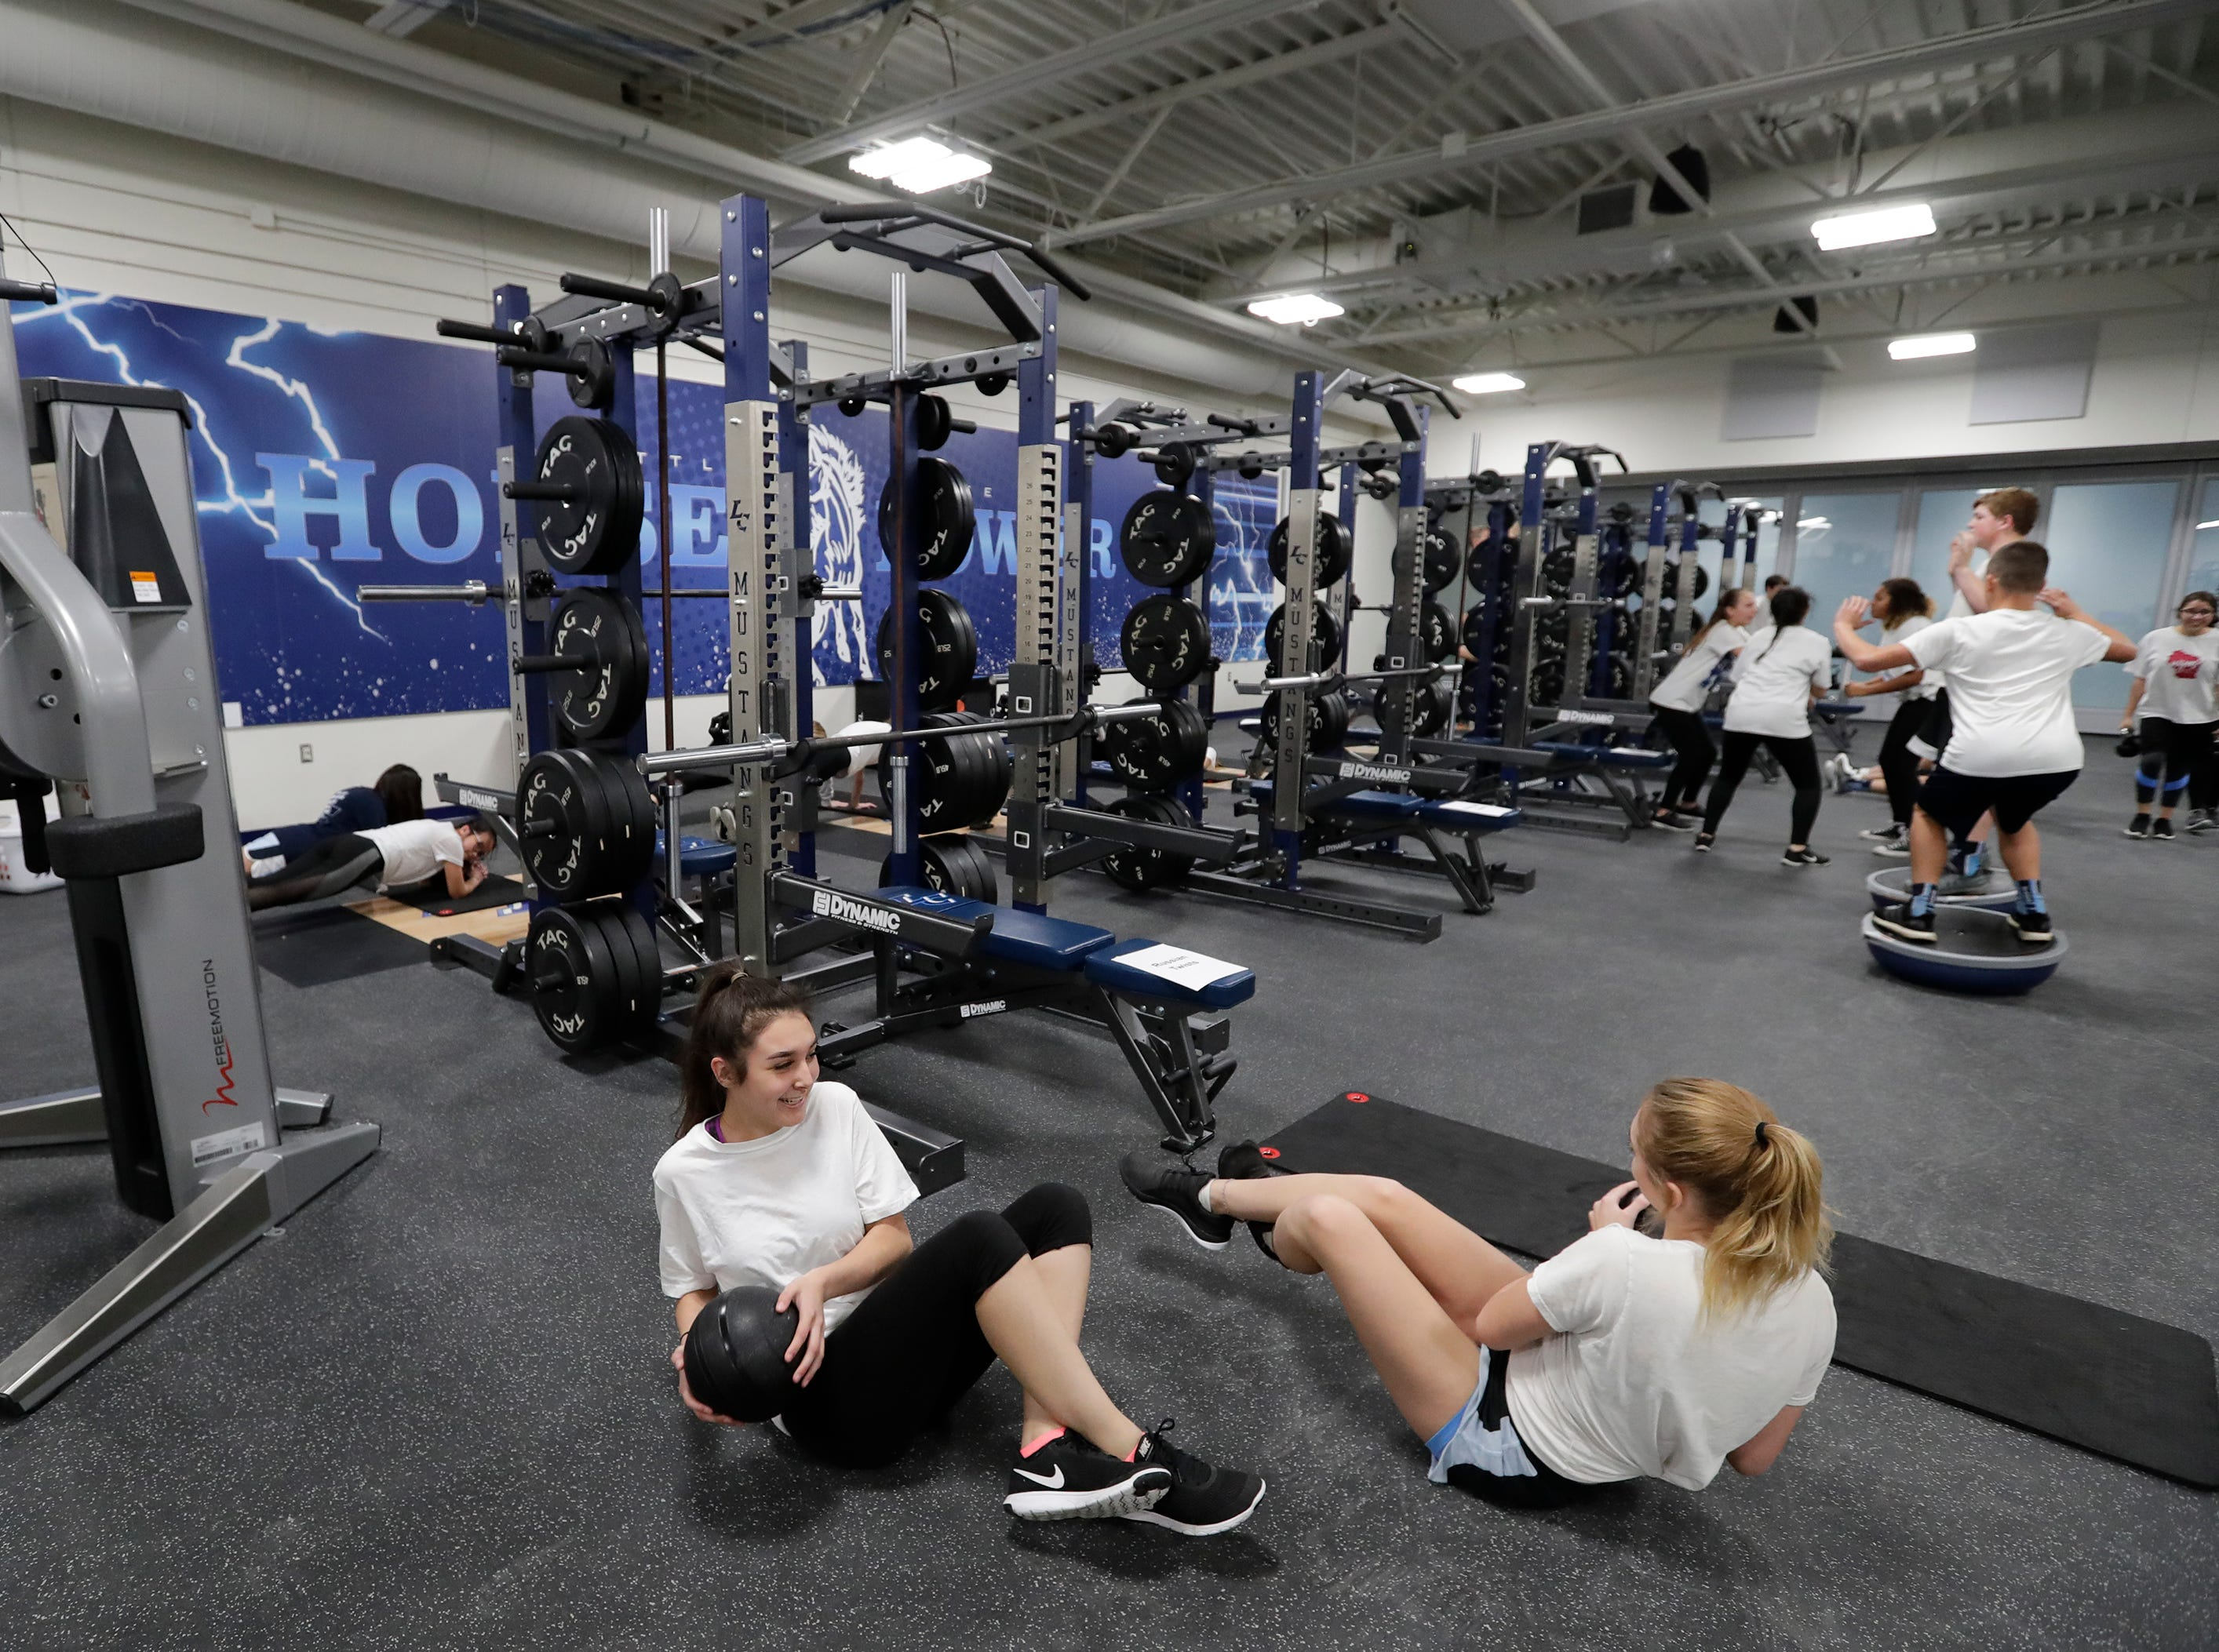 Angel Sanchez, left, and Madison Withrow participate in the Intro to Strength and Conditioning class in the new fitness center at Little Chute High School Tuesday, November 6, 2018, in Little Chute, Wis. 